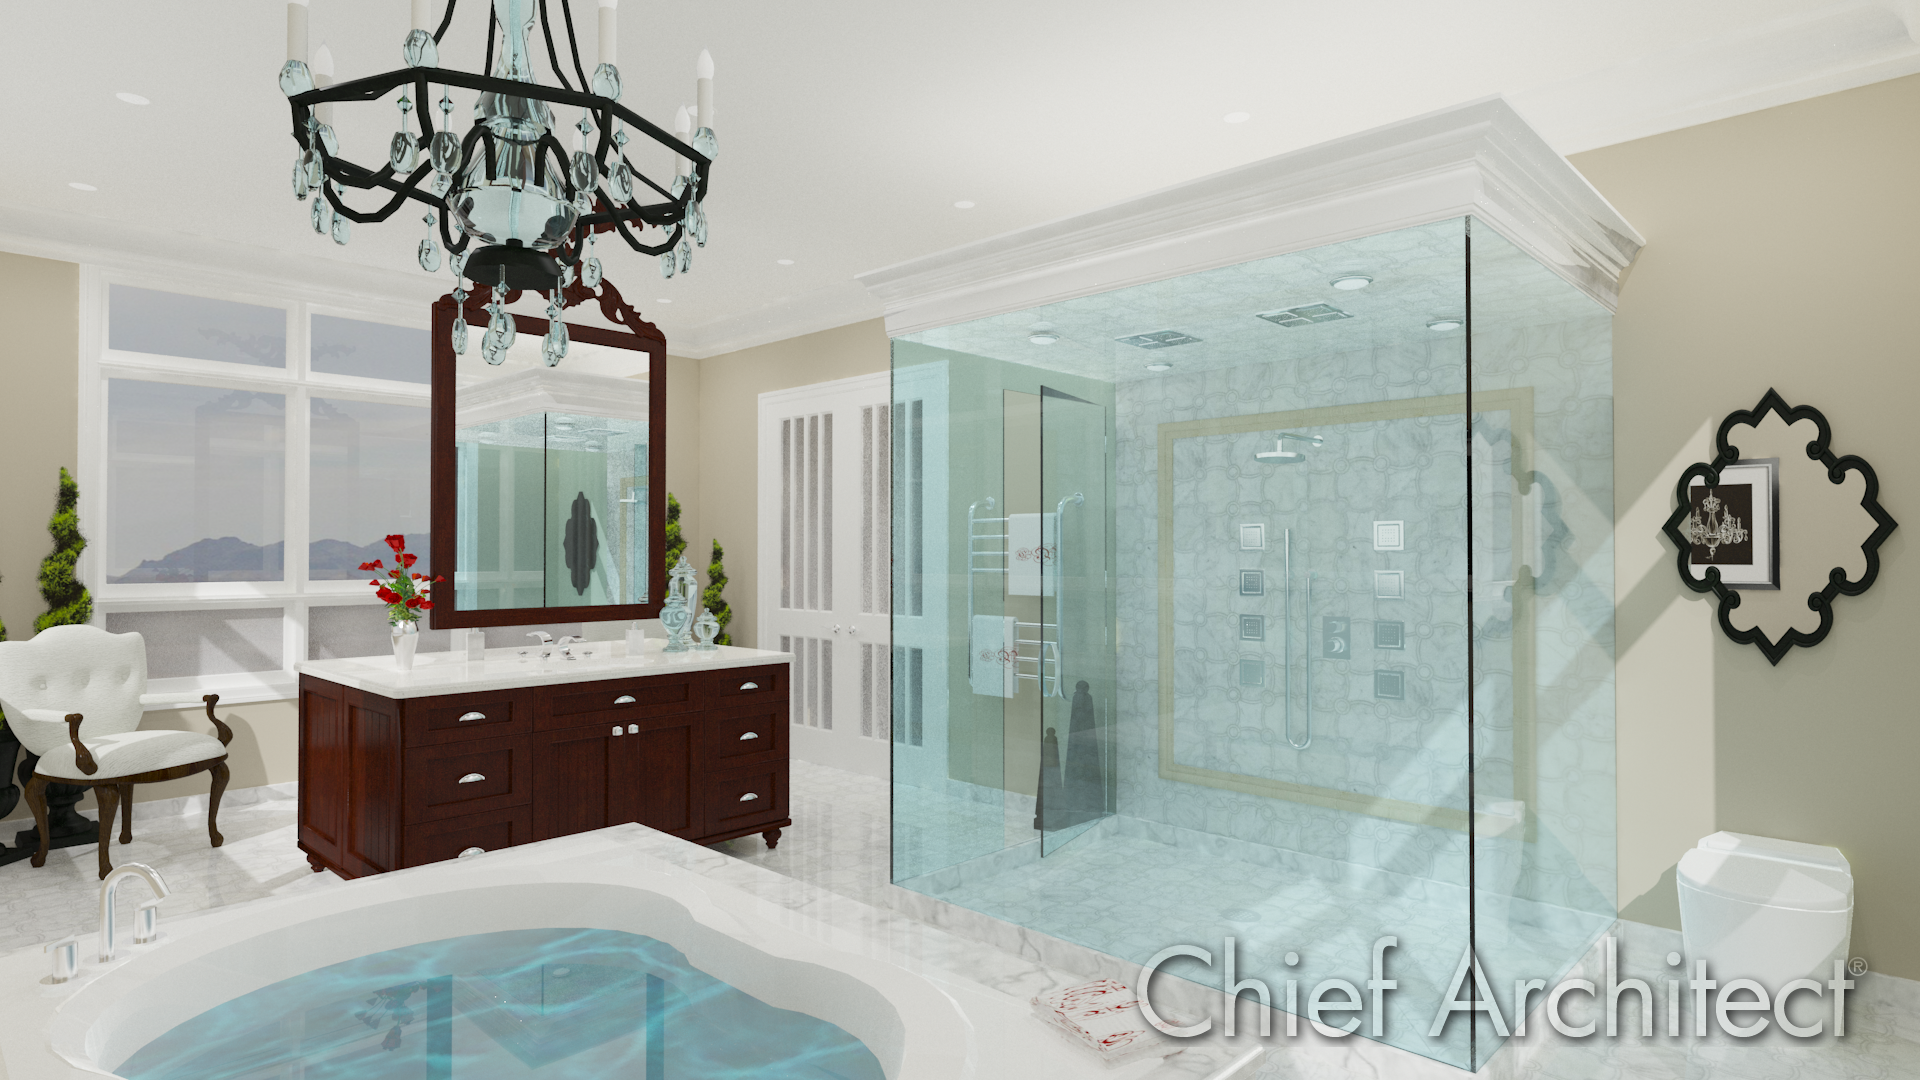 Bathroom Software Design Free Adorable Chandelier Bath  Chief Architect Software  Rendersideas Decorating Design